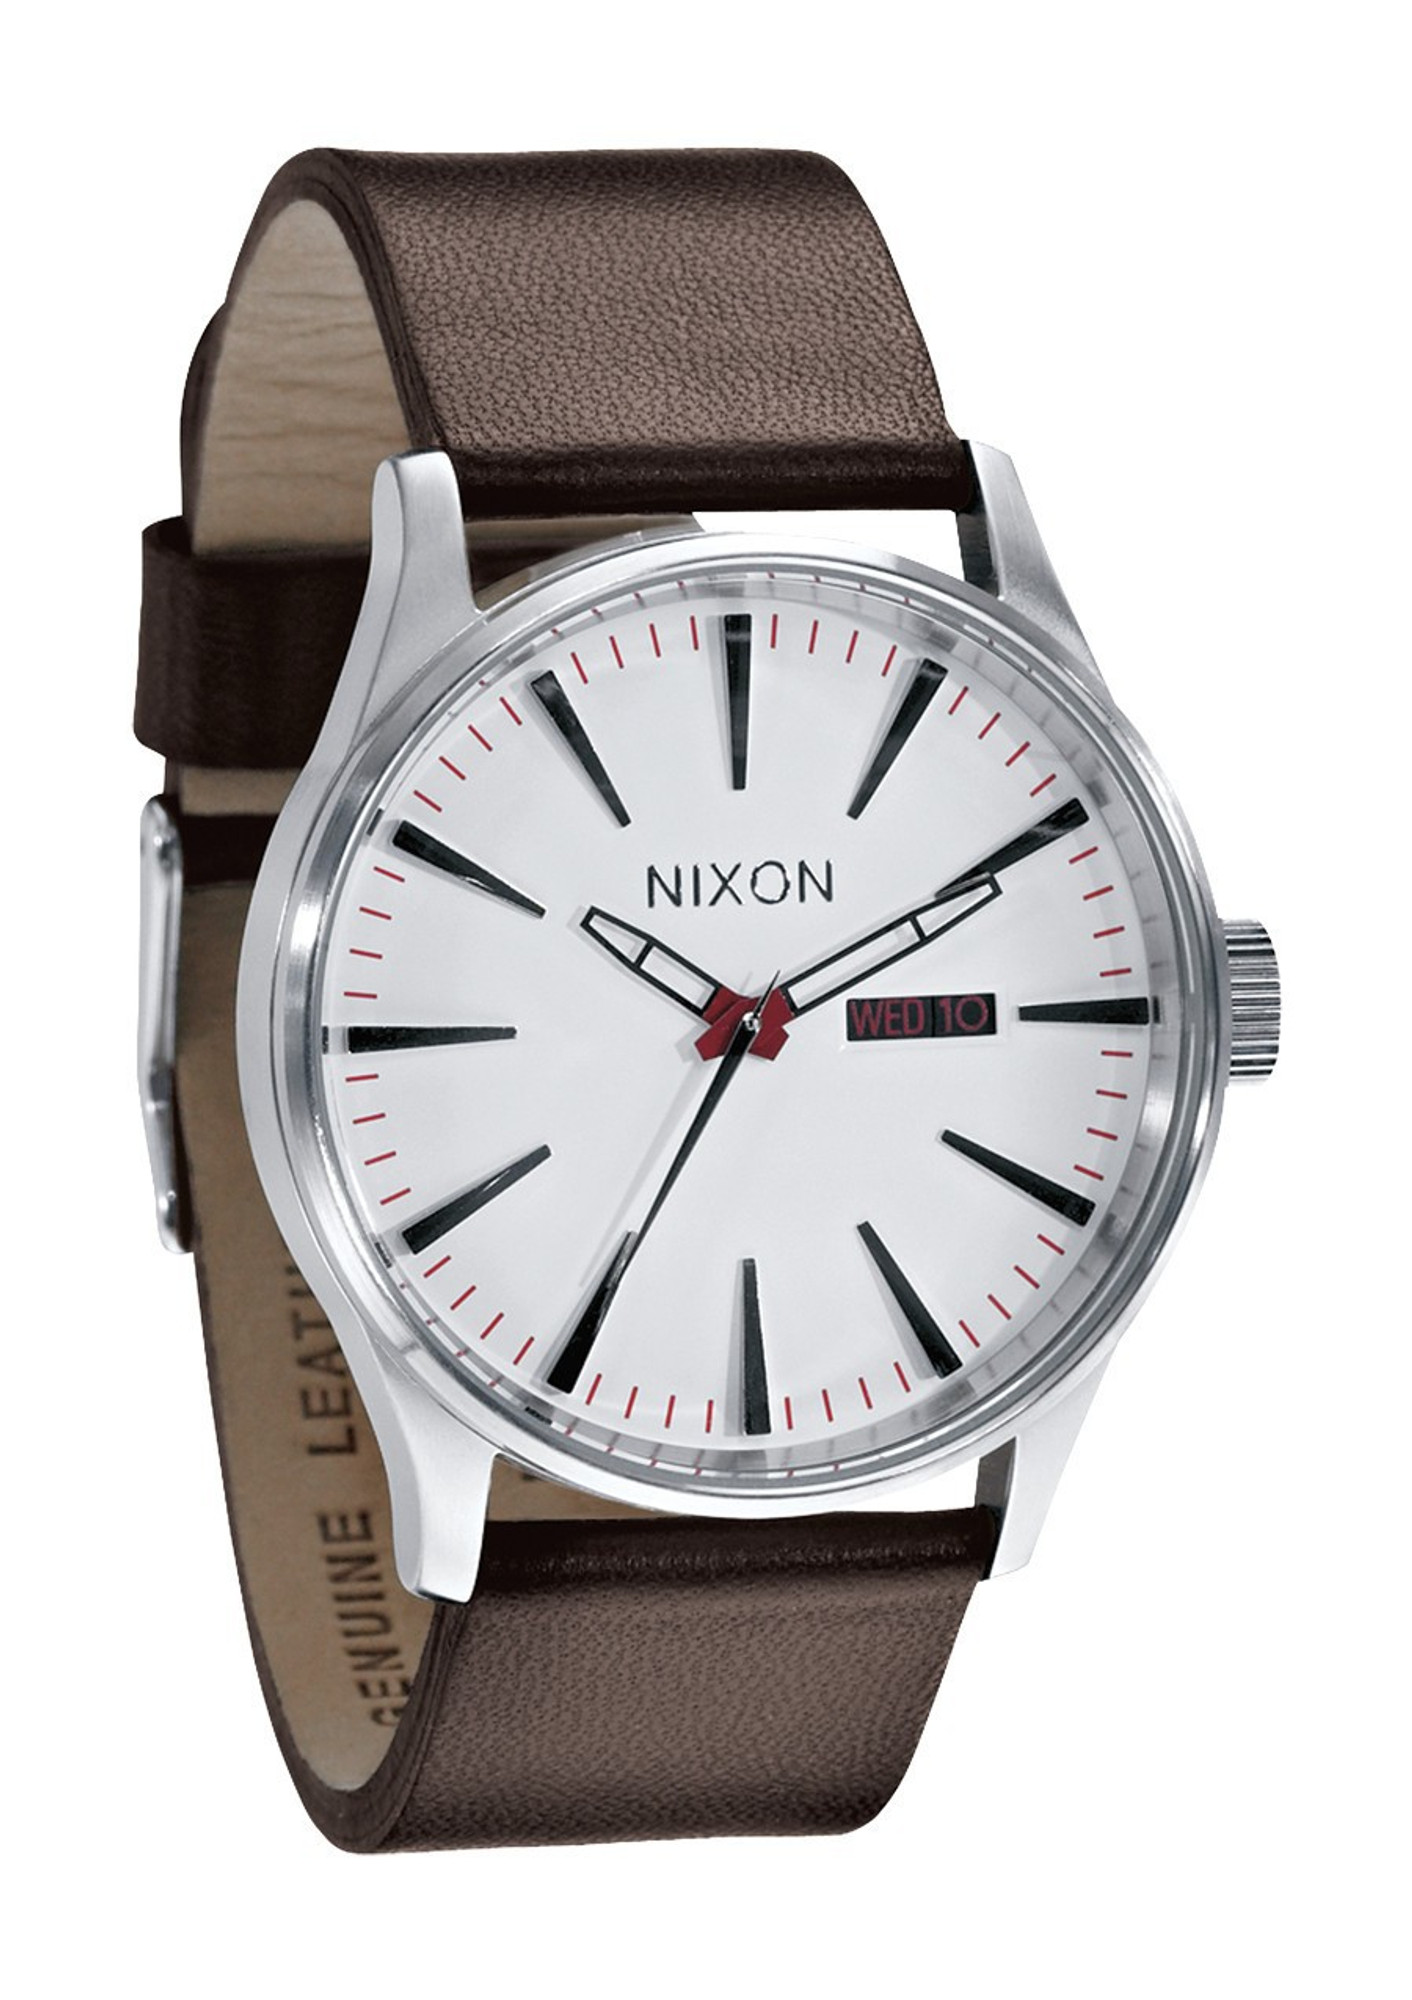 NIXON The Sentry Leather Uhr Stahl Weiß A105 100